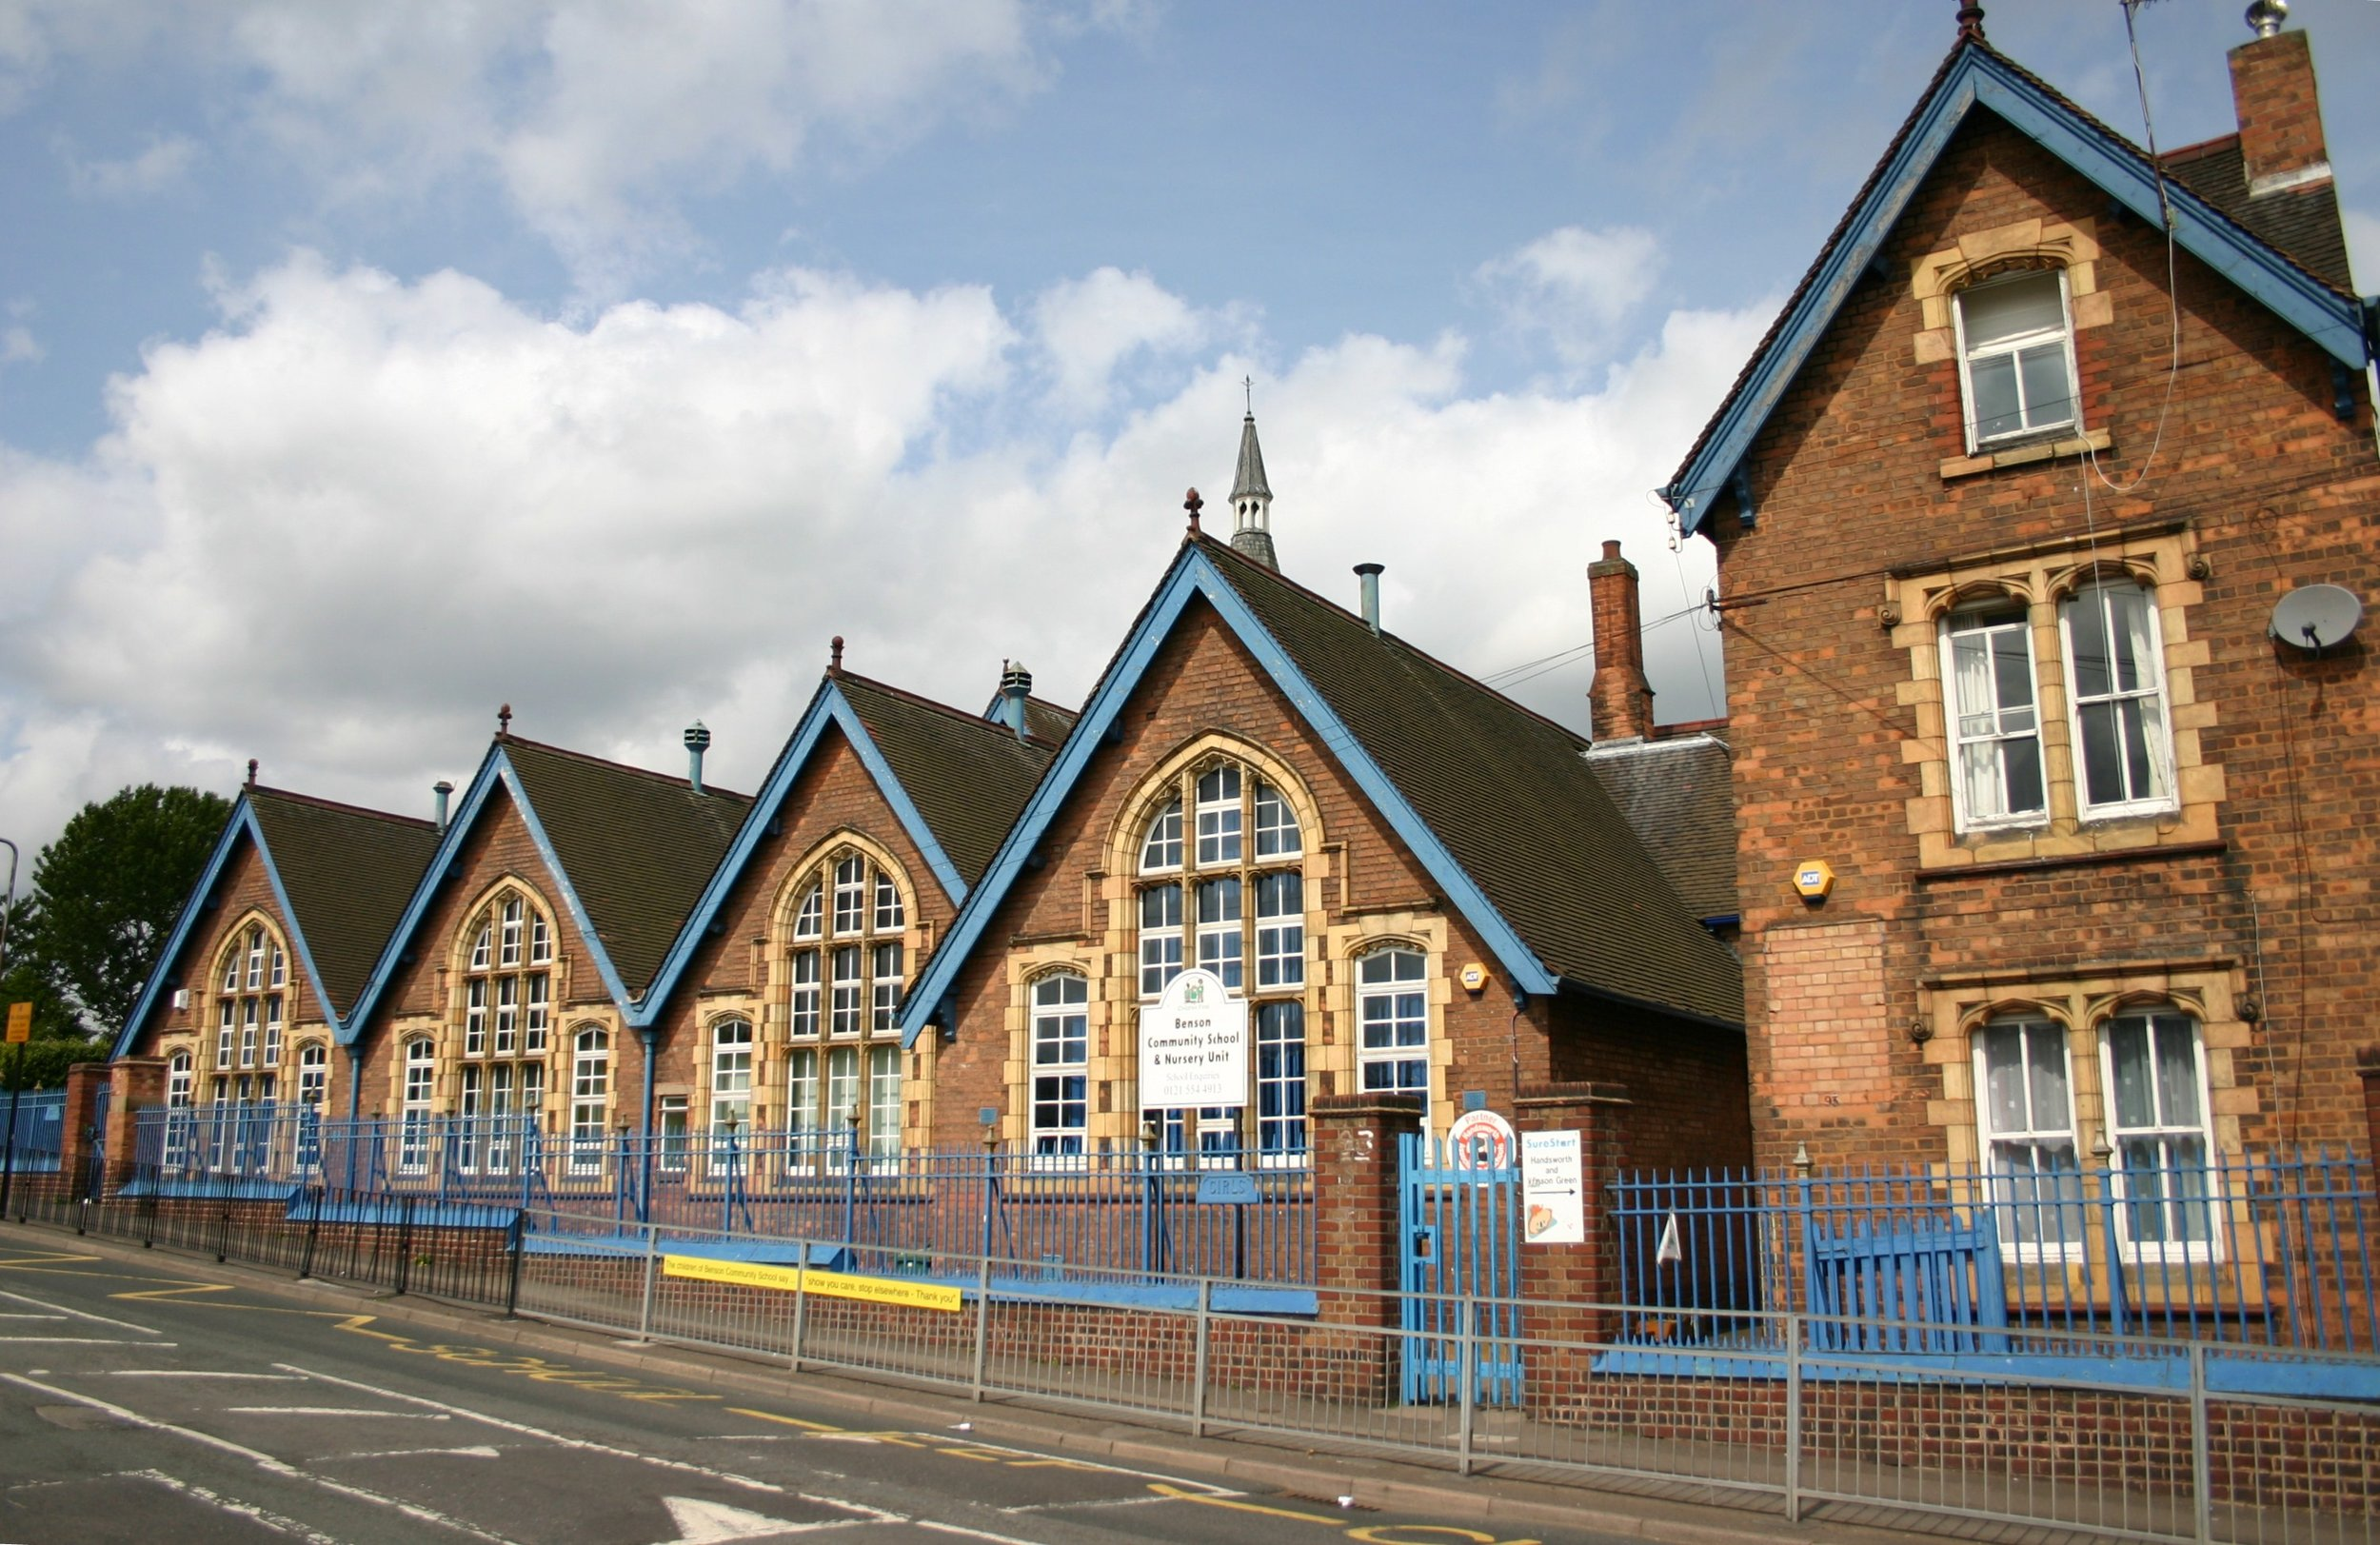 BENSON ROAD SCHOOL built in 1888 still there today 2018. Photo taken in 2009